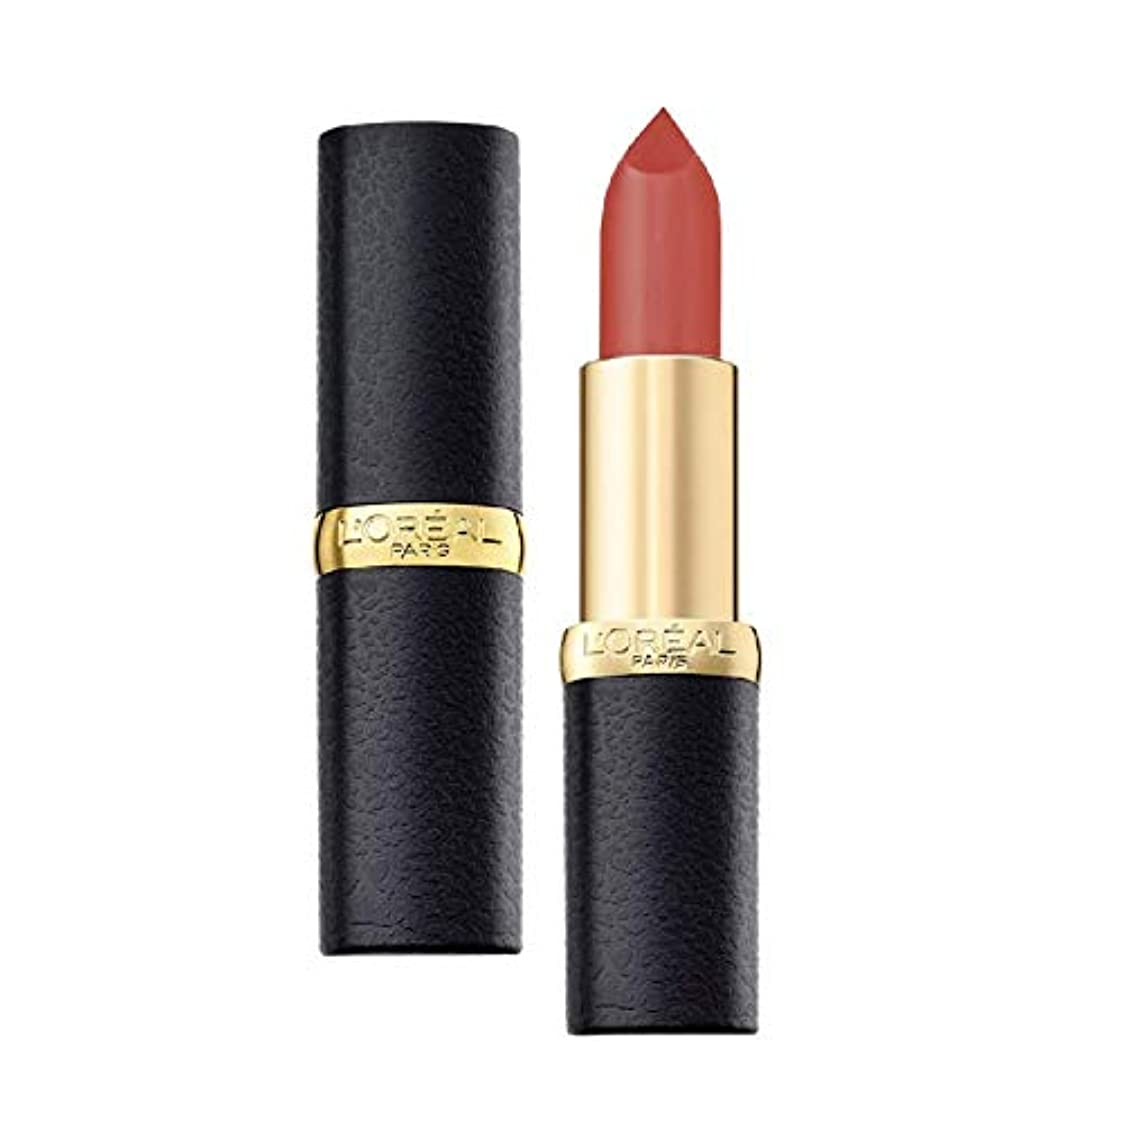 媒染剤お気に入り狂人L'Oreal Paris Color Riche Moist Matte Lipstick, 233 Rouge A Porter, 3.7g